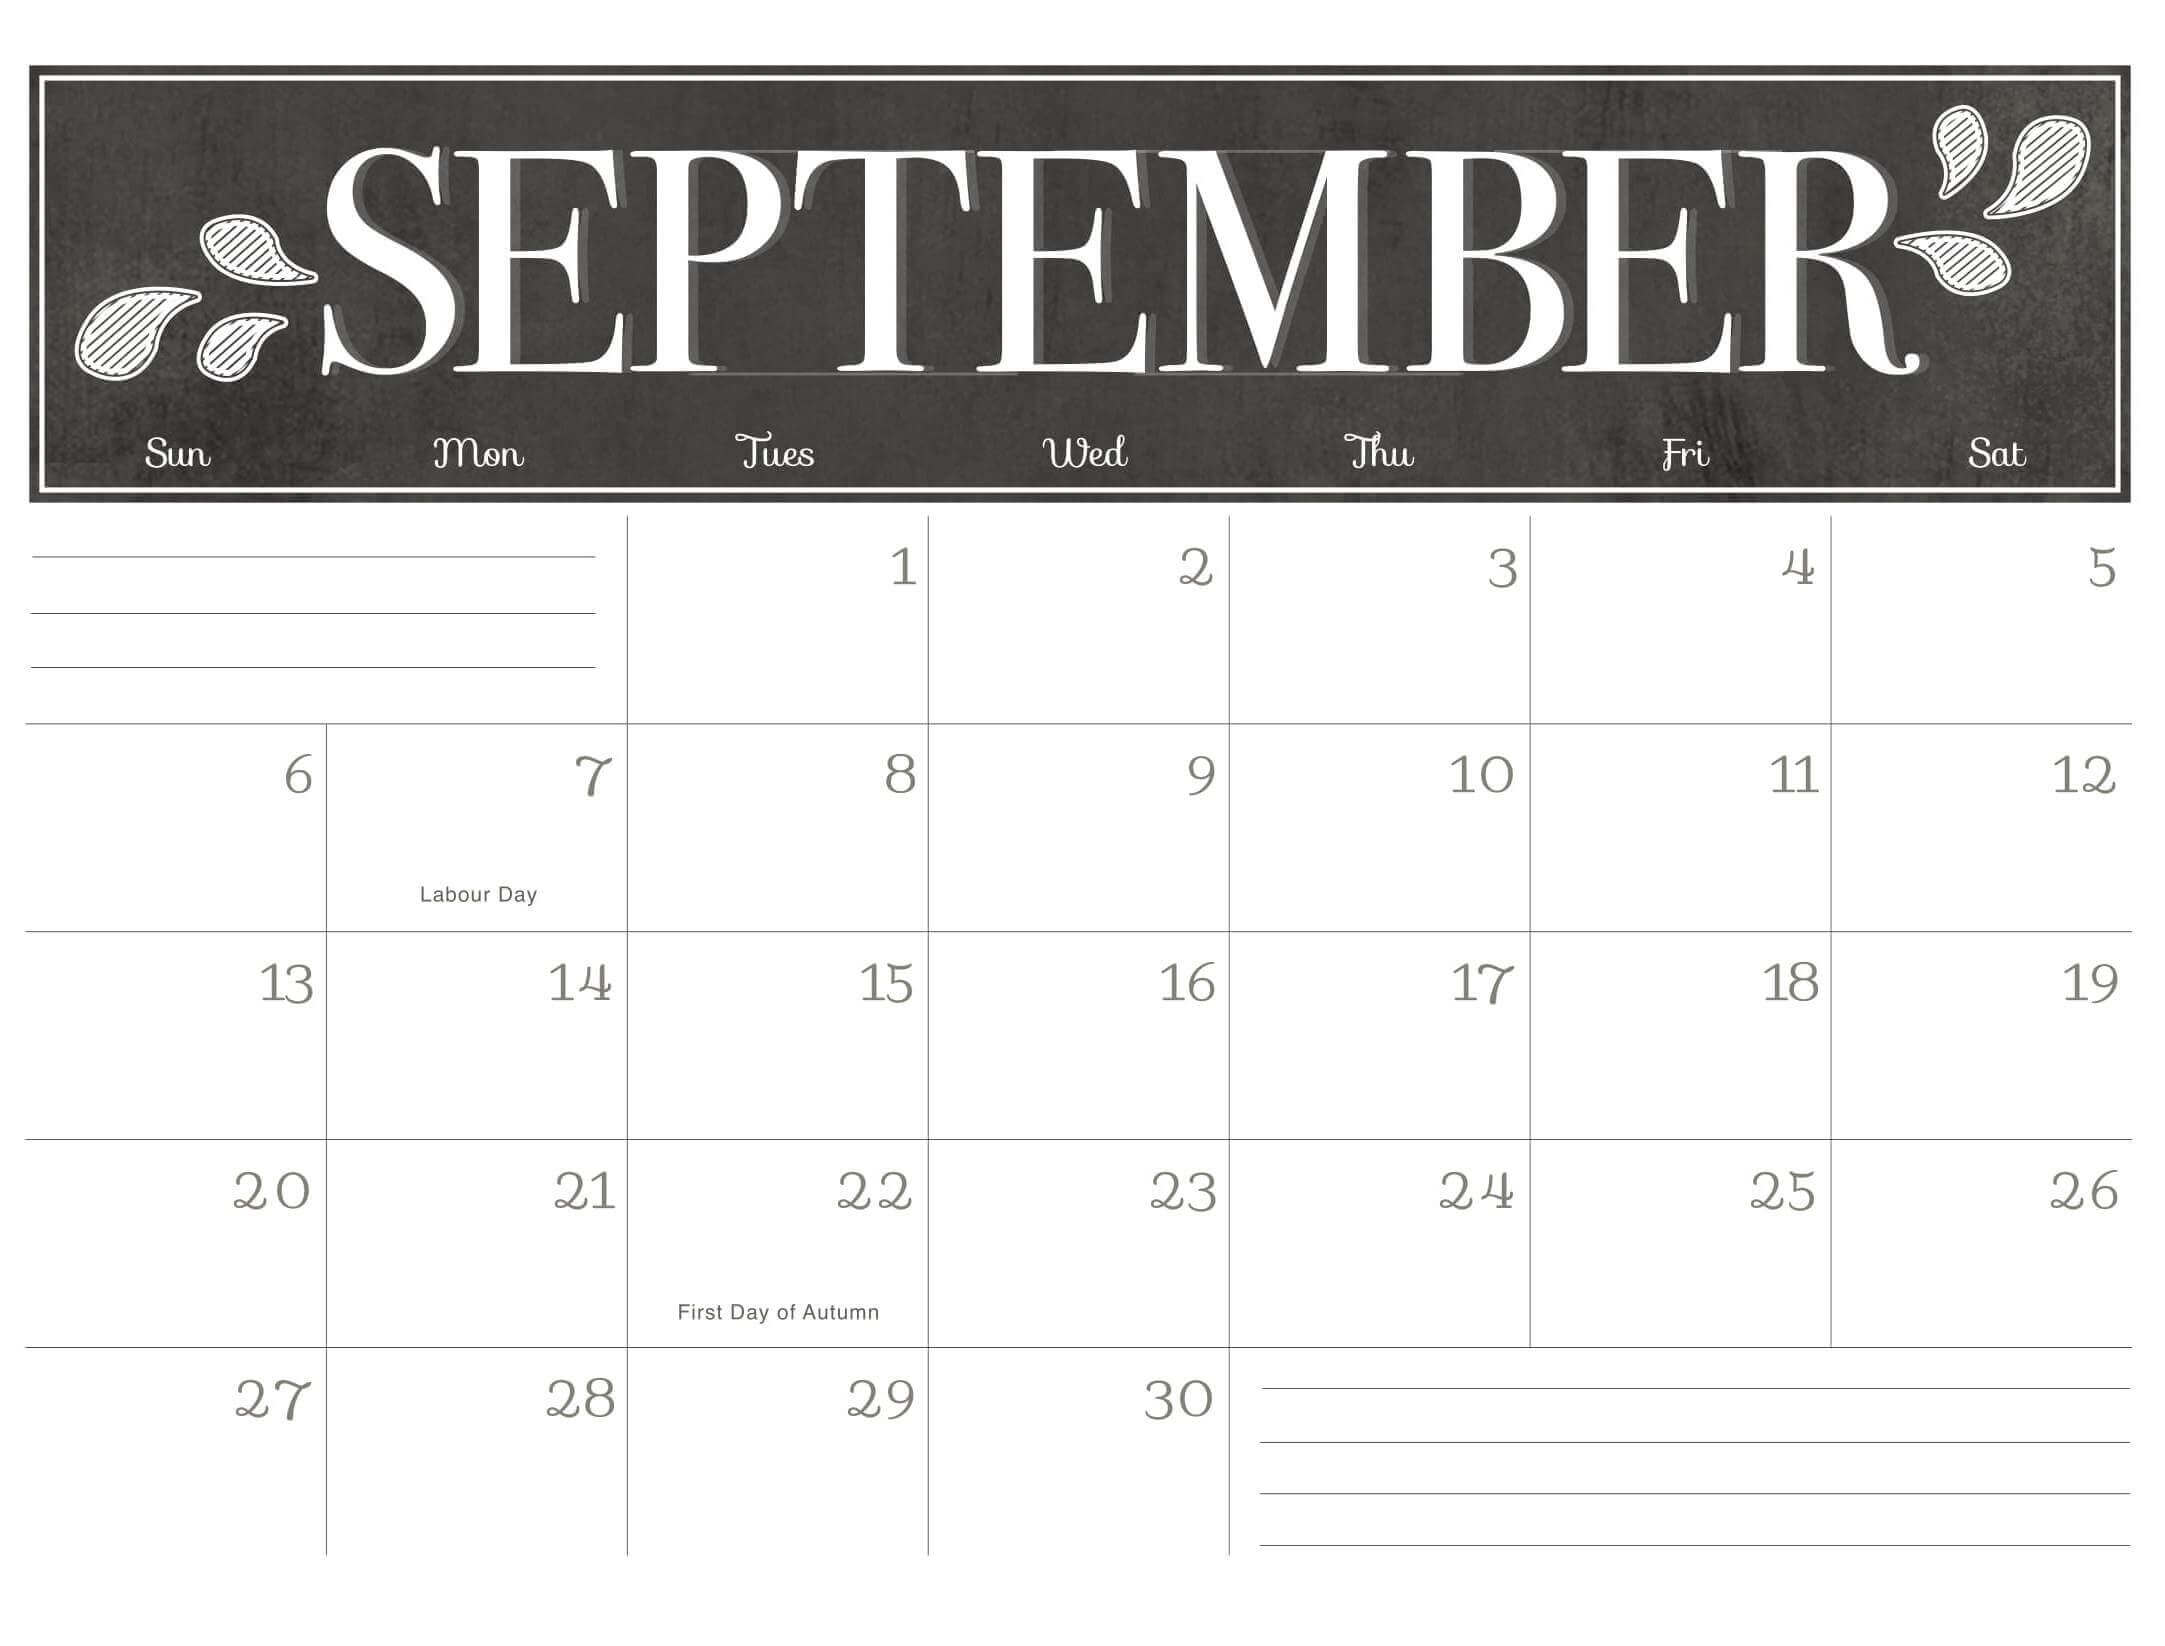 2020 September Calendar with Holidays